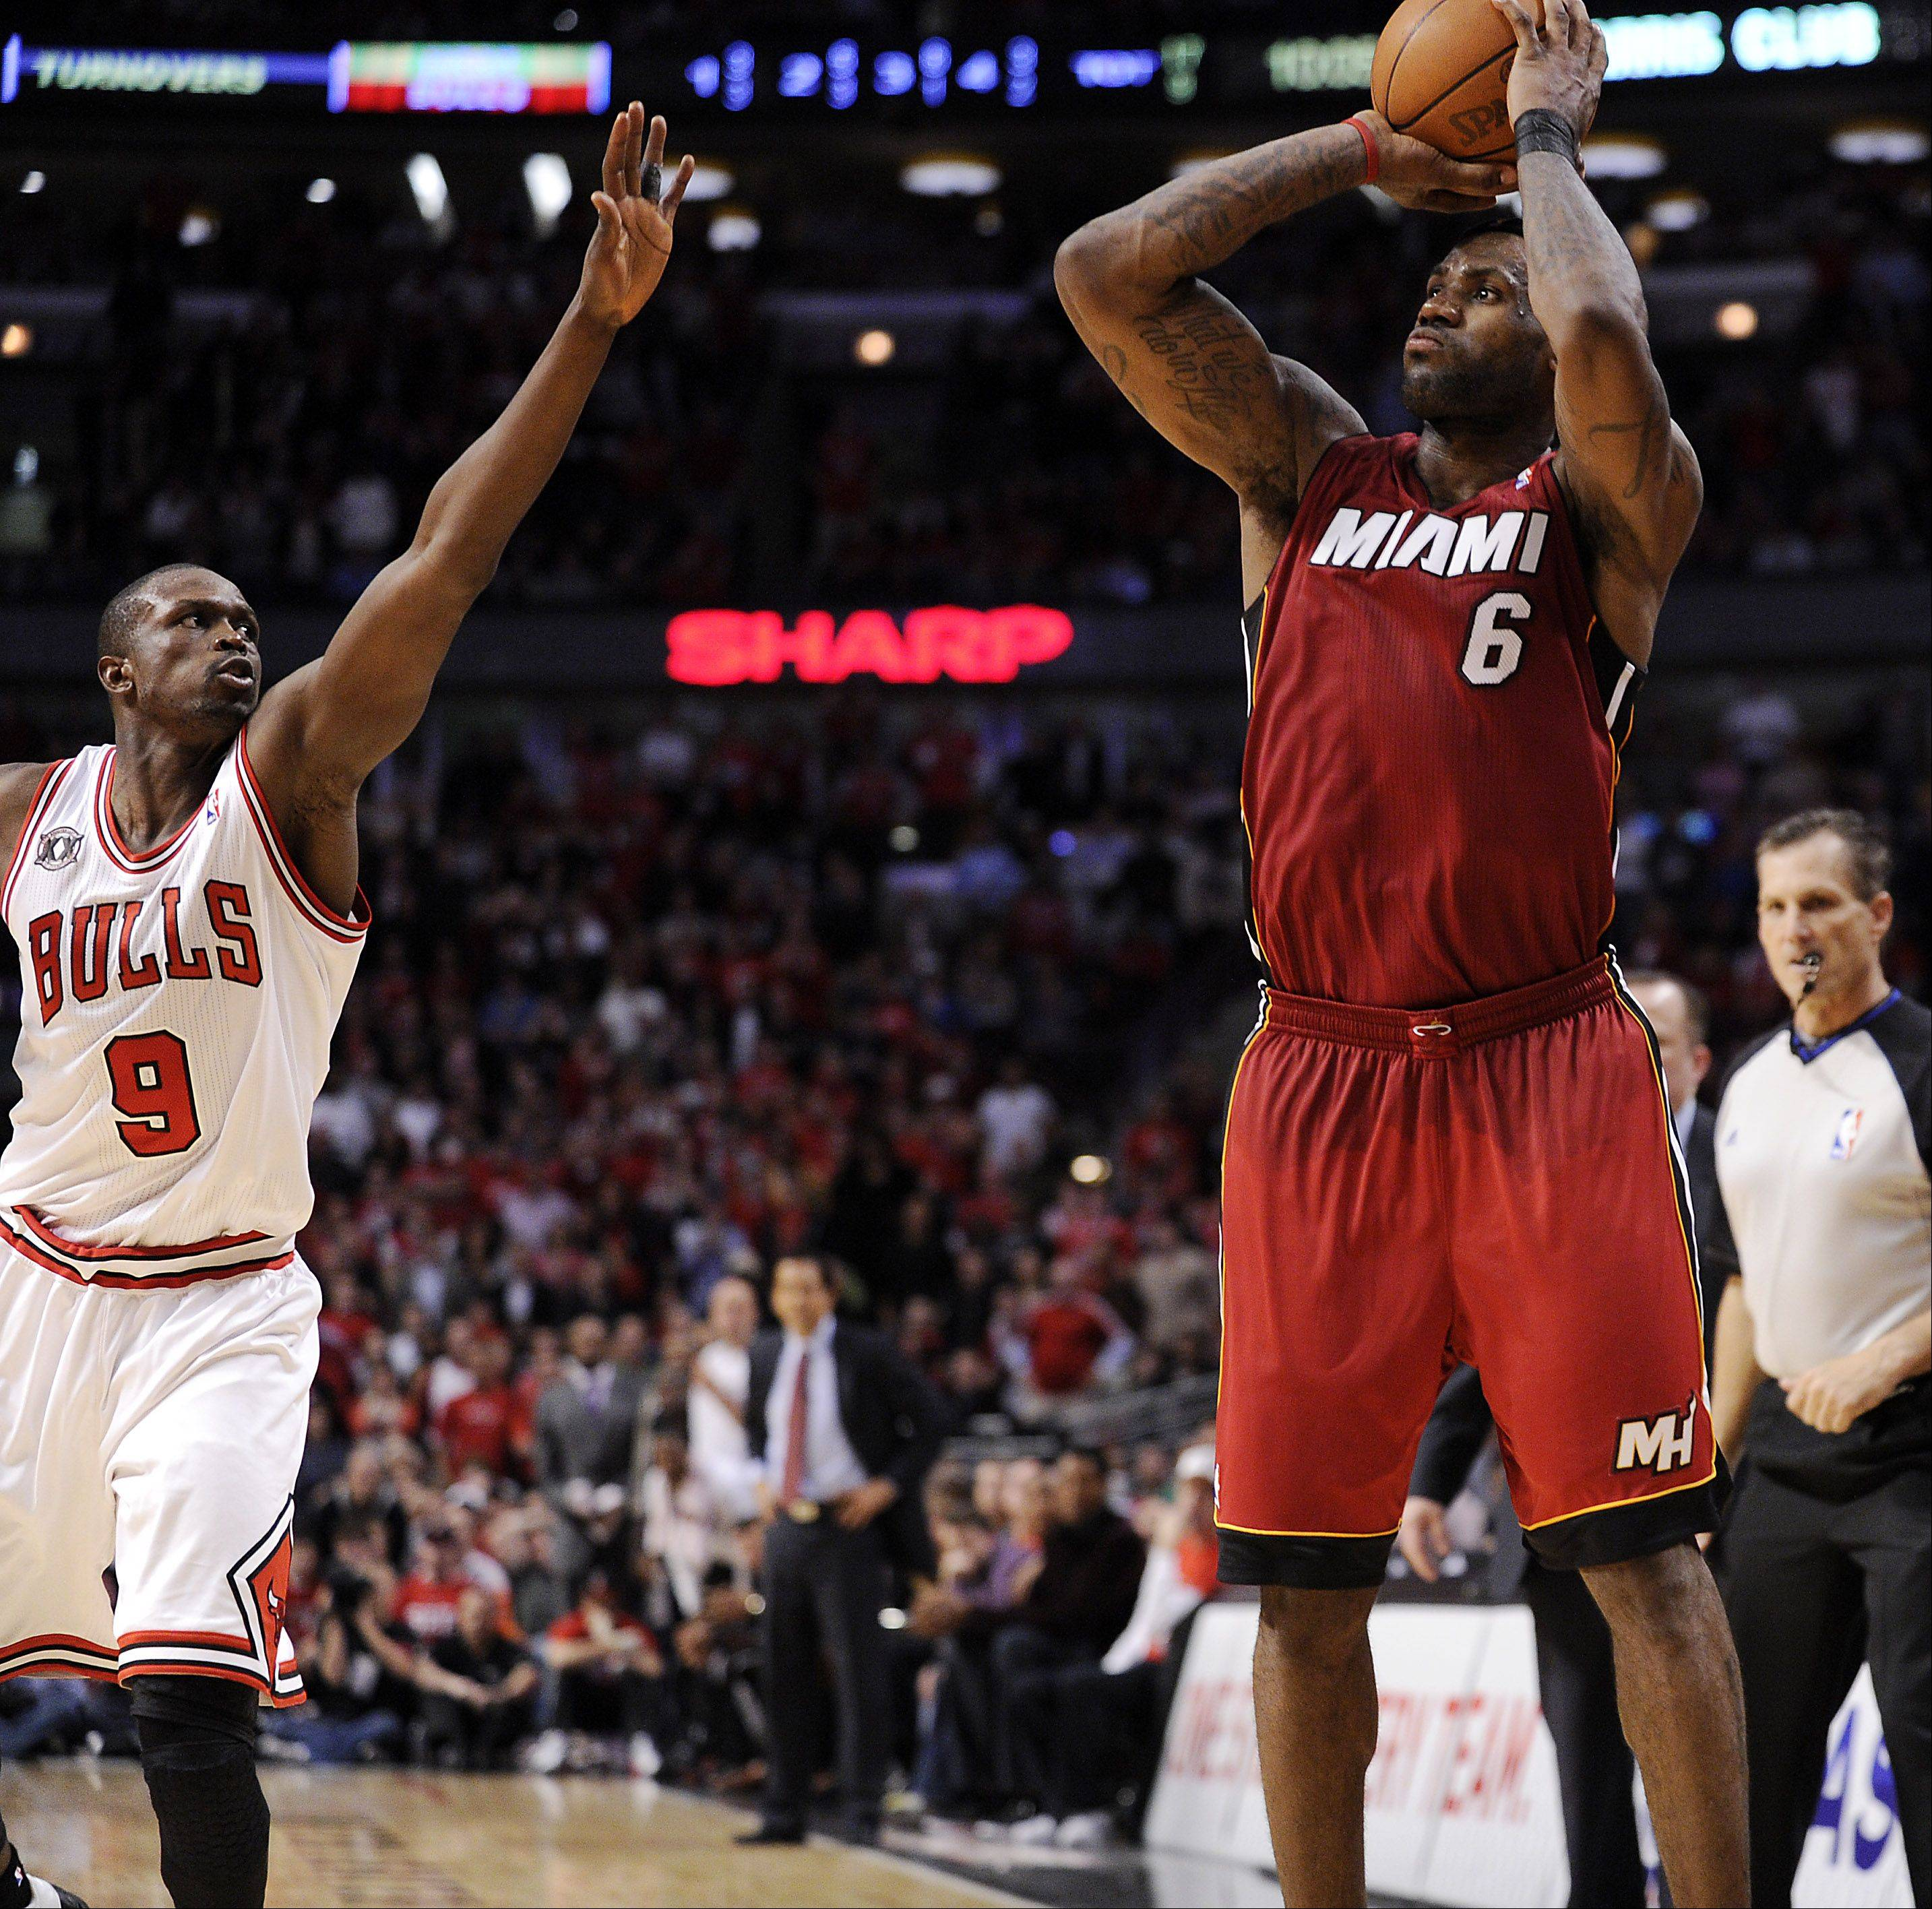 The Heat's LeBron James shoots over the Bulls' Luol Deng late in the fourth quarter.